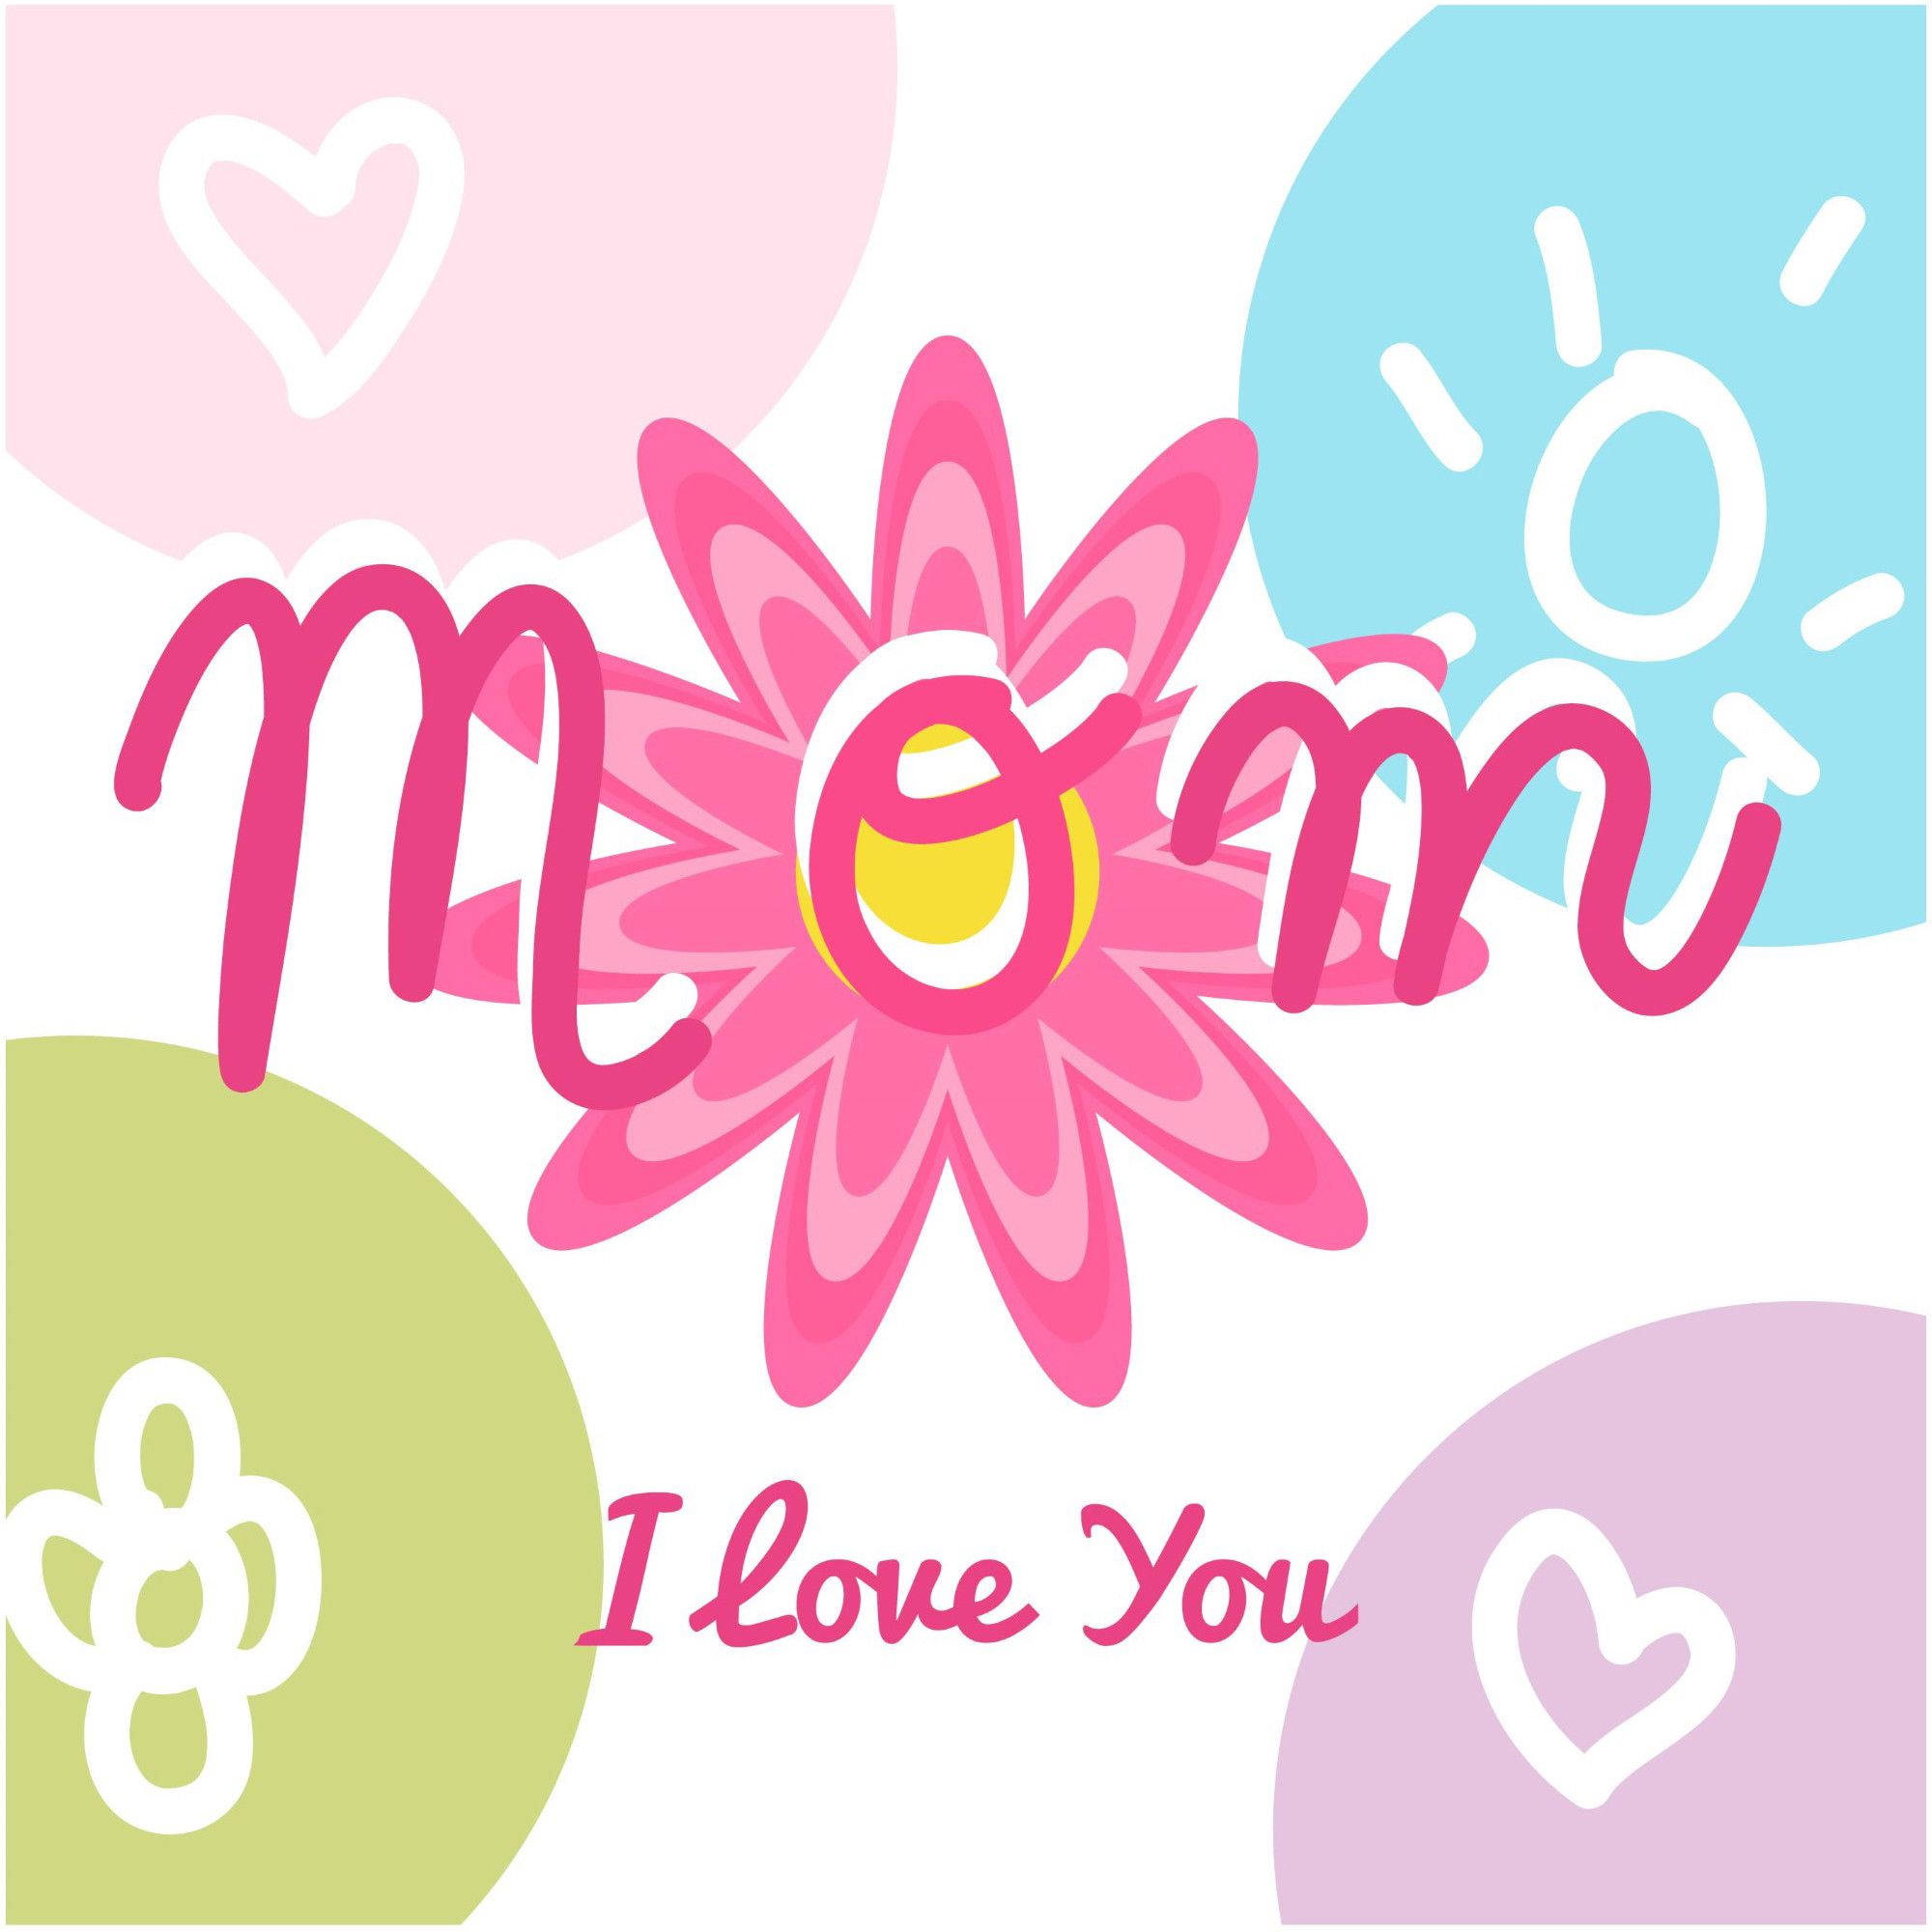 Happy Mothers's Day, I love you so much greeting cards